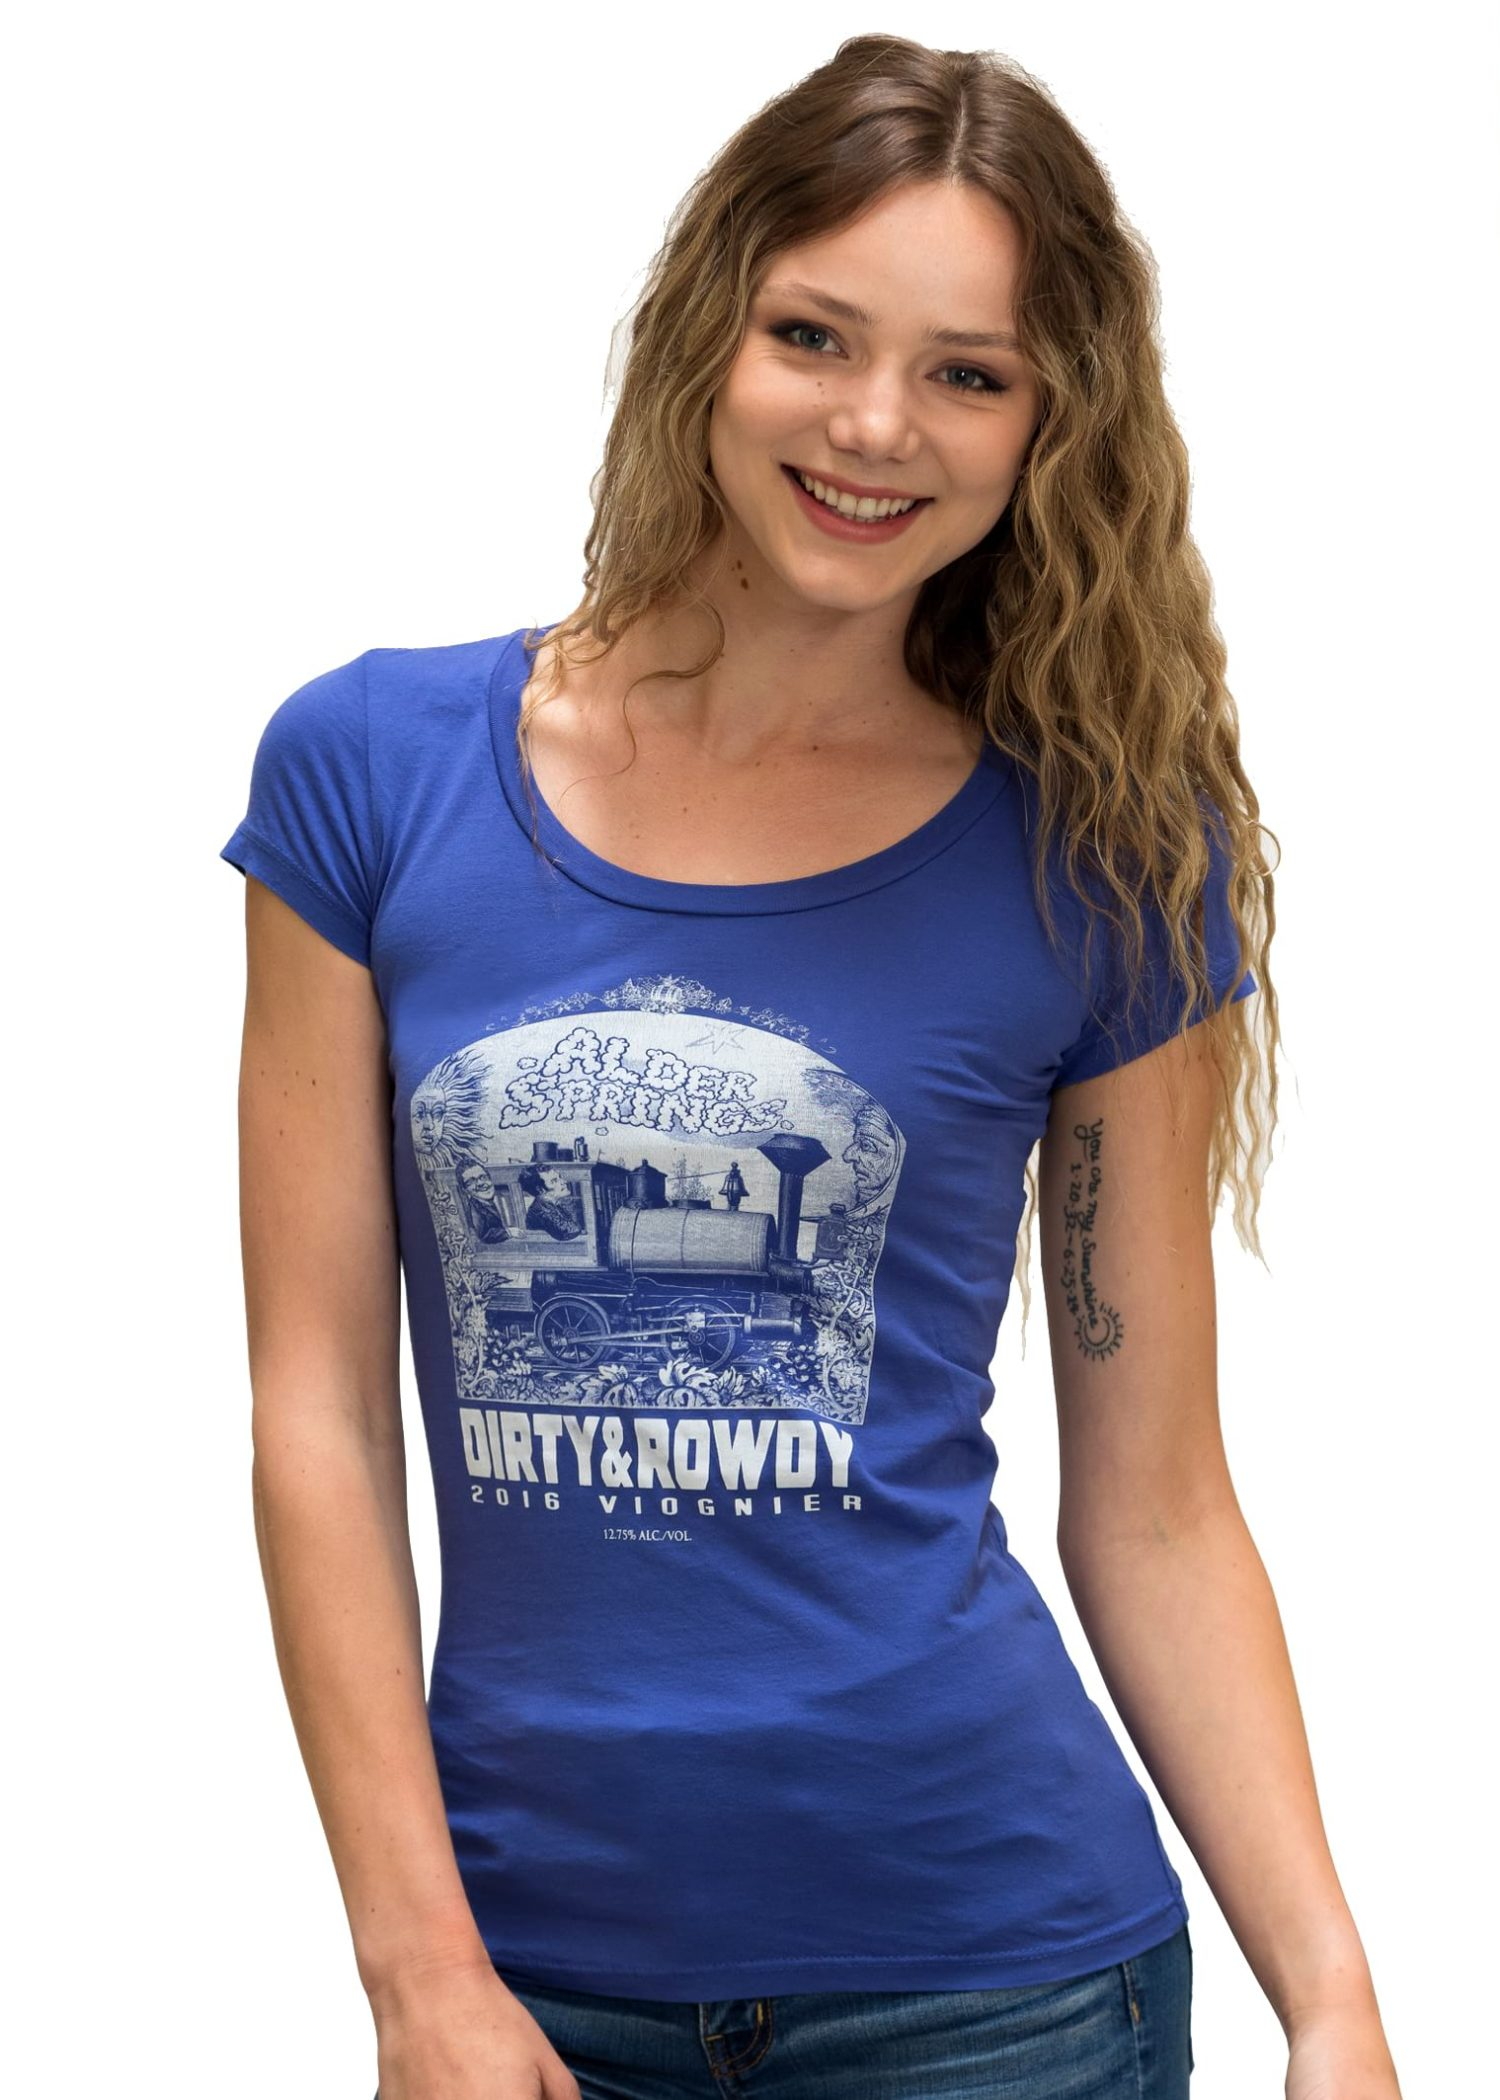 Women's Blue Dirty and Rowdy Jersey Scoop T-Shirt